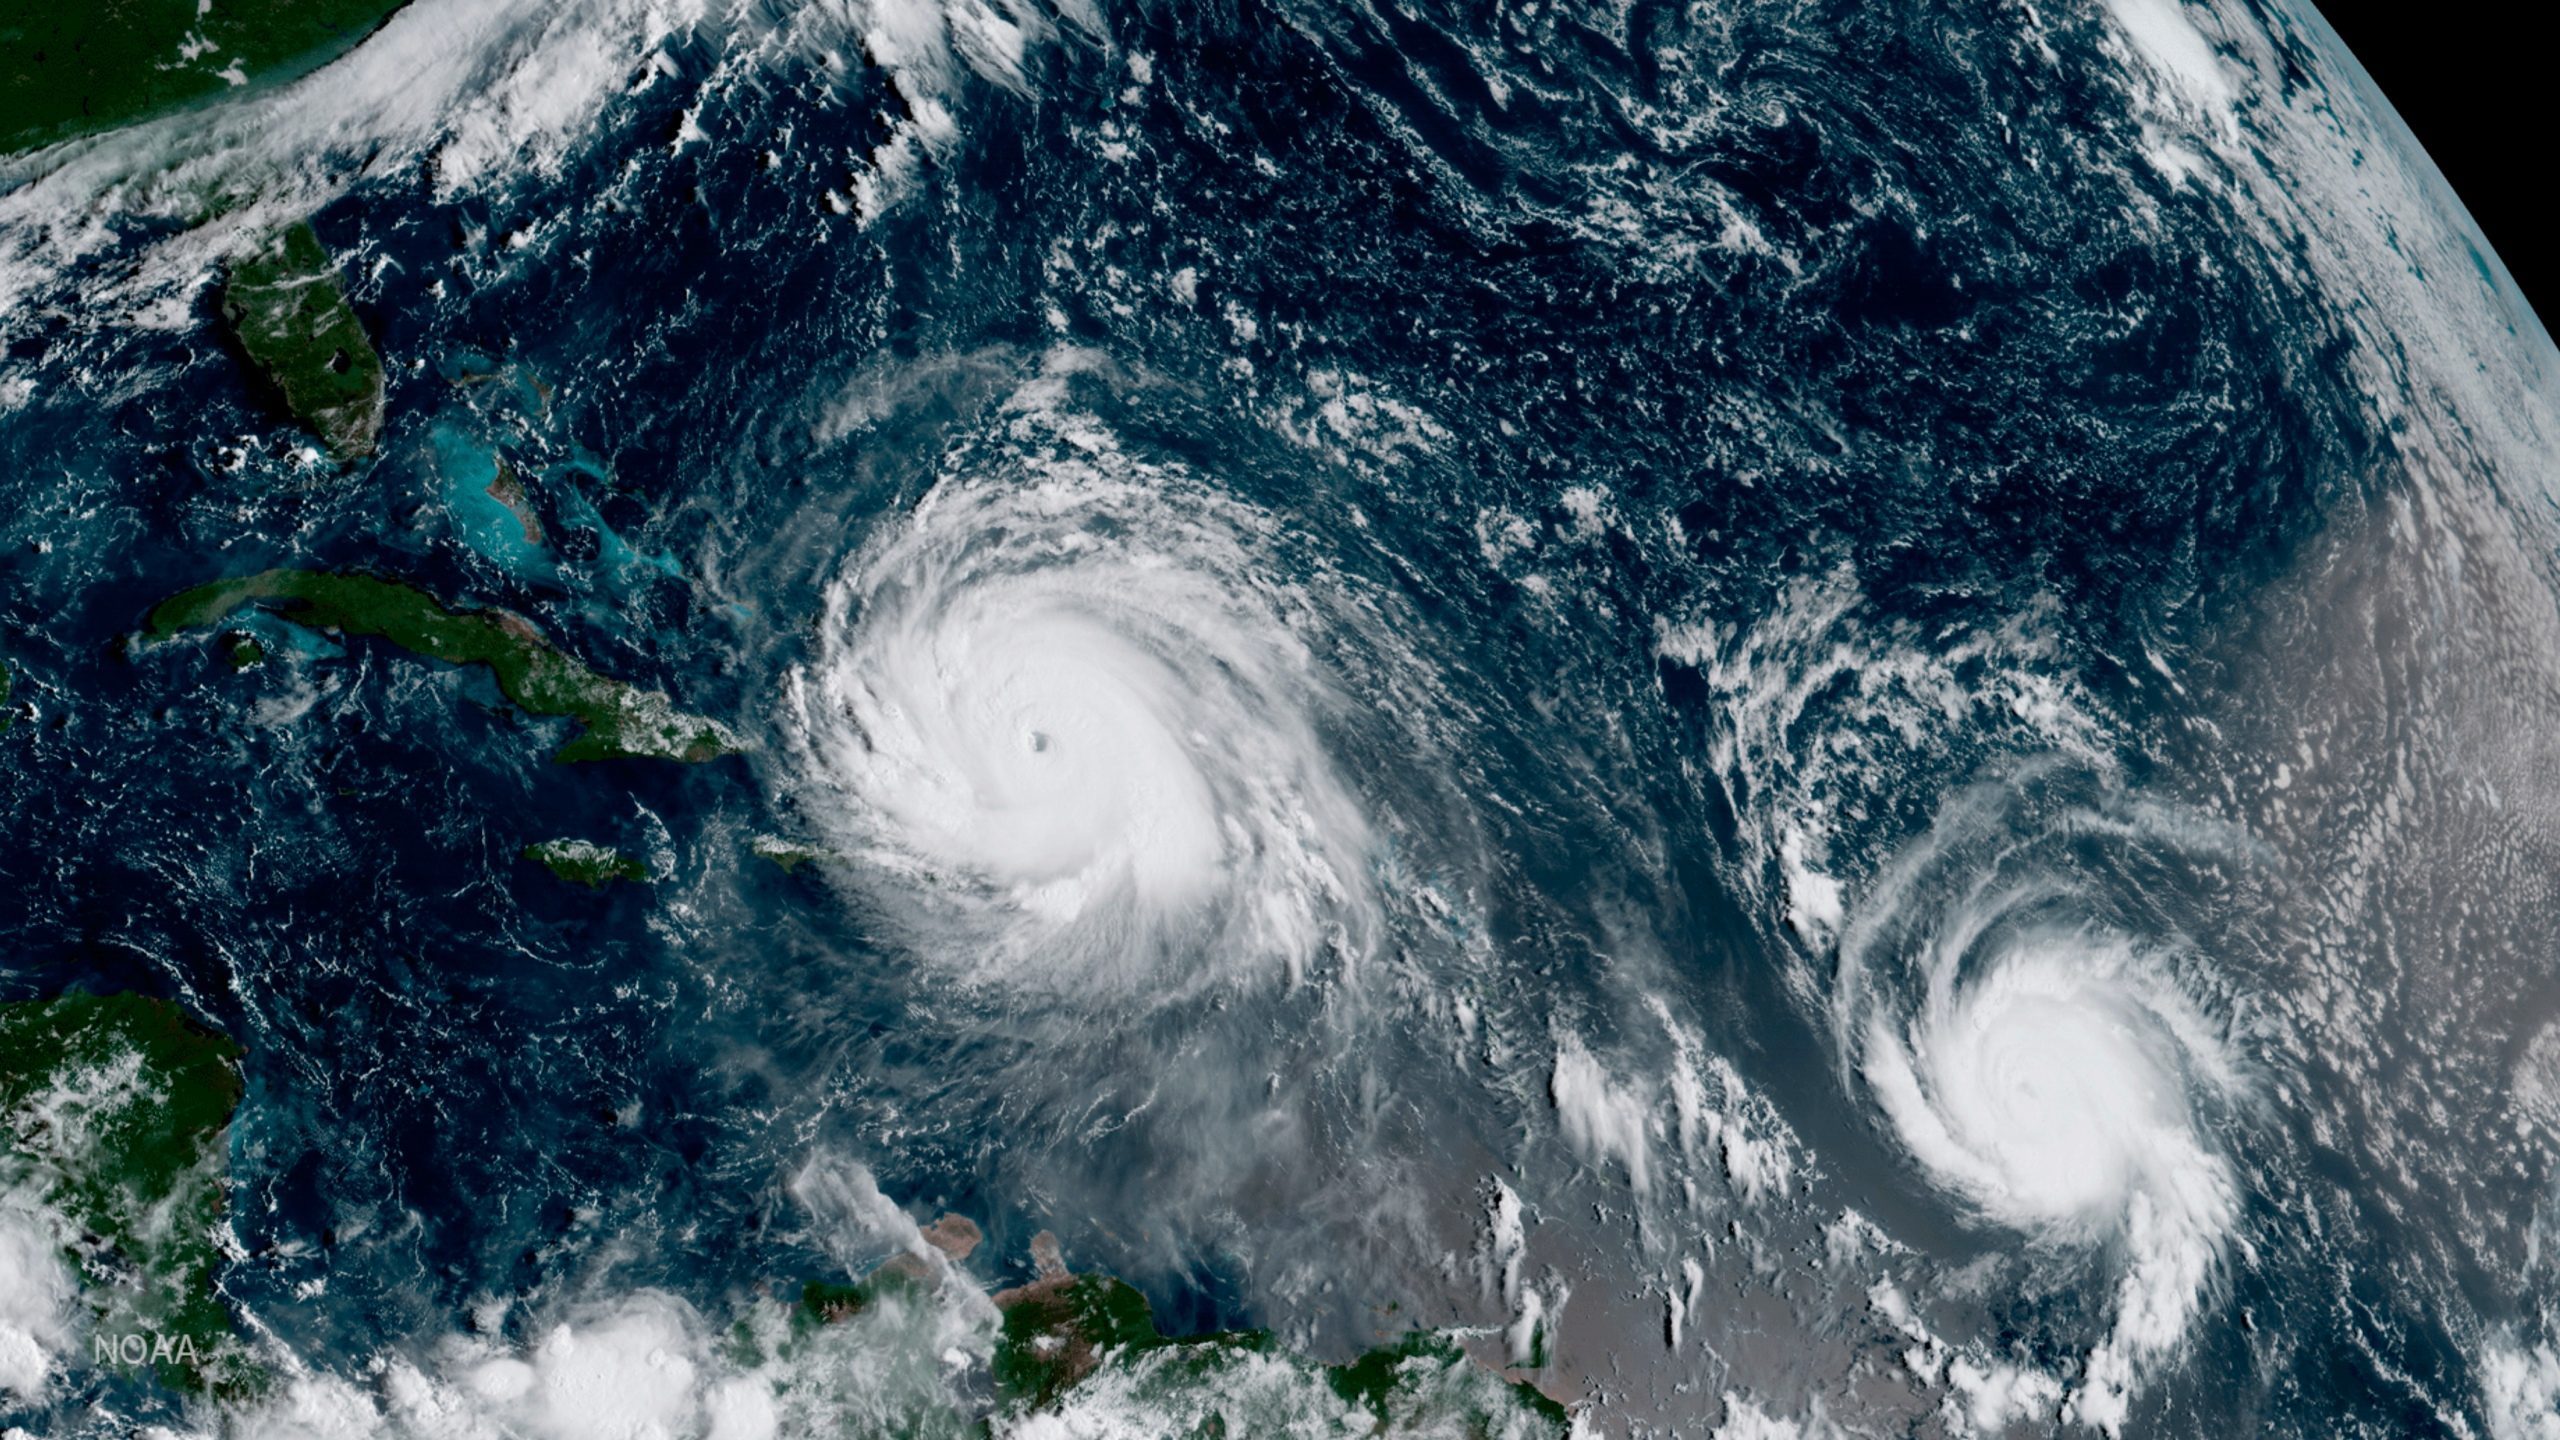 More_Major_Hurricanes_81086-159532.jpg39594995